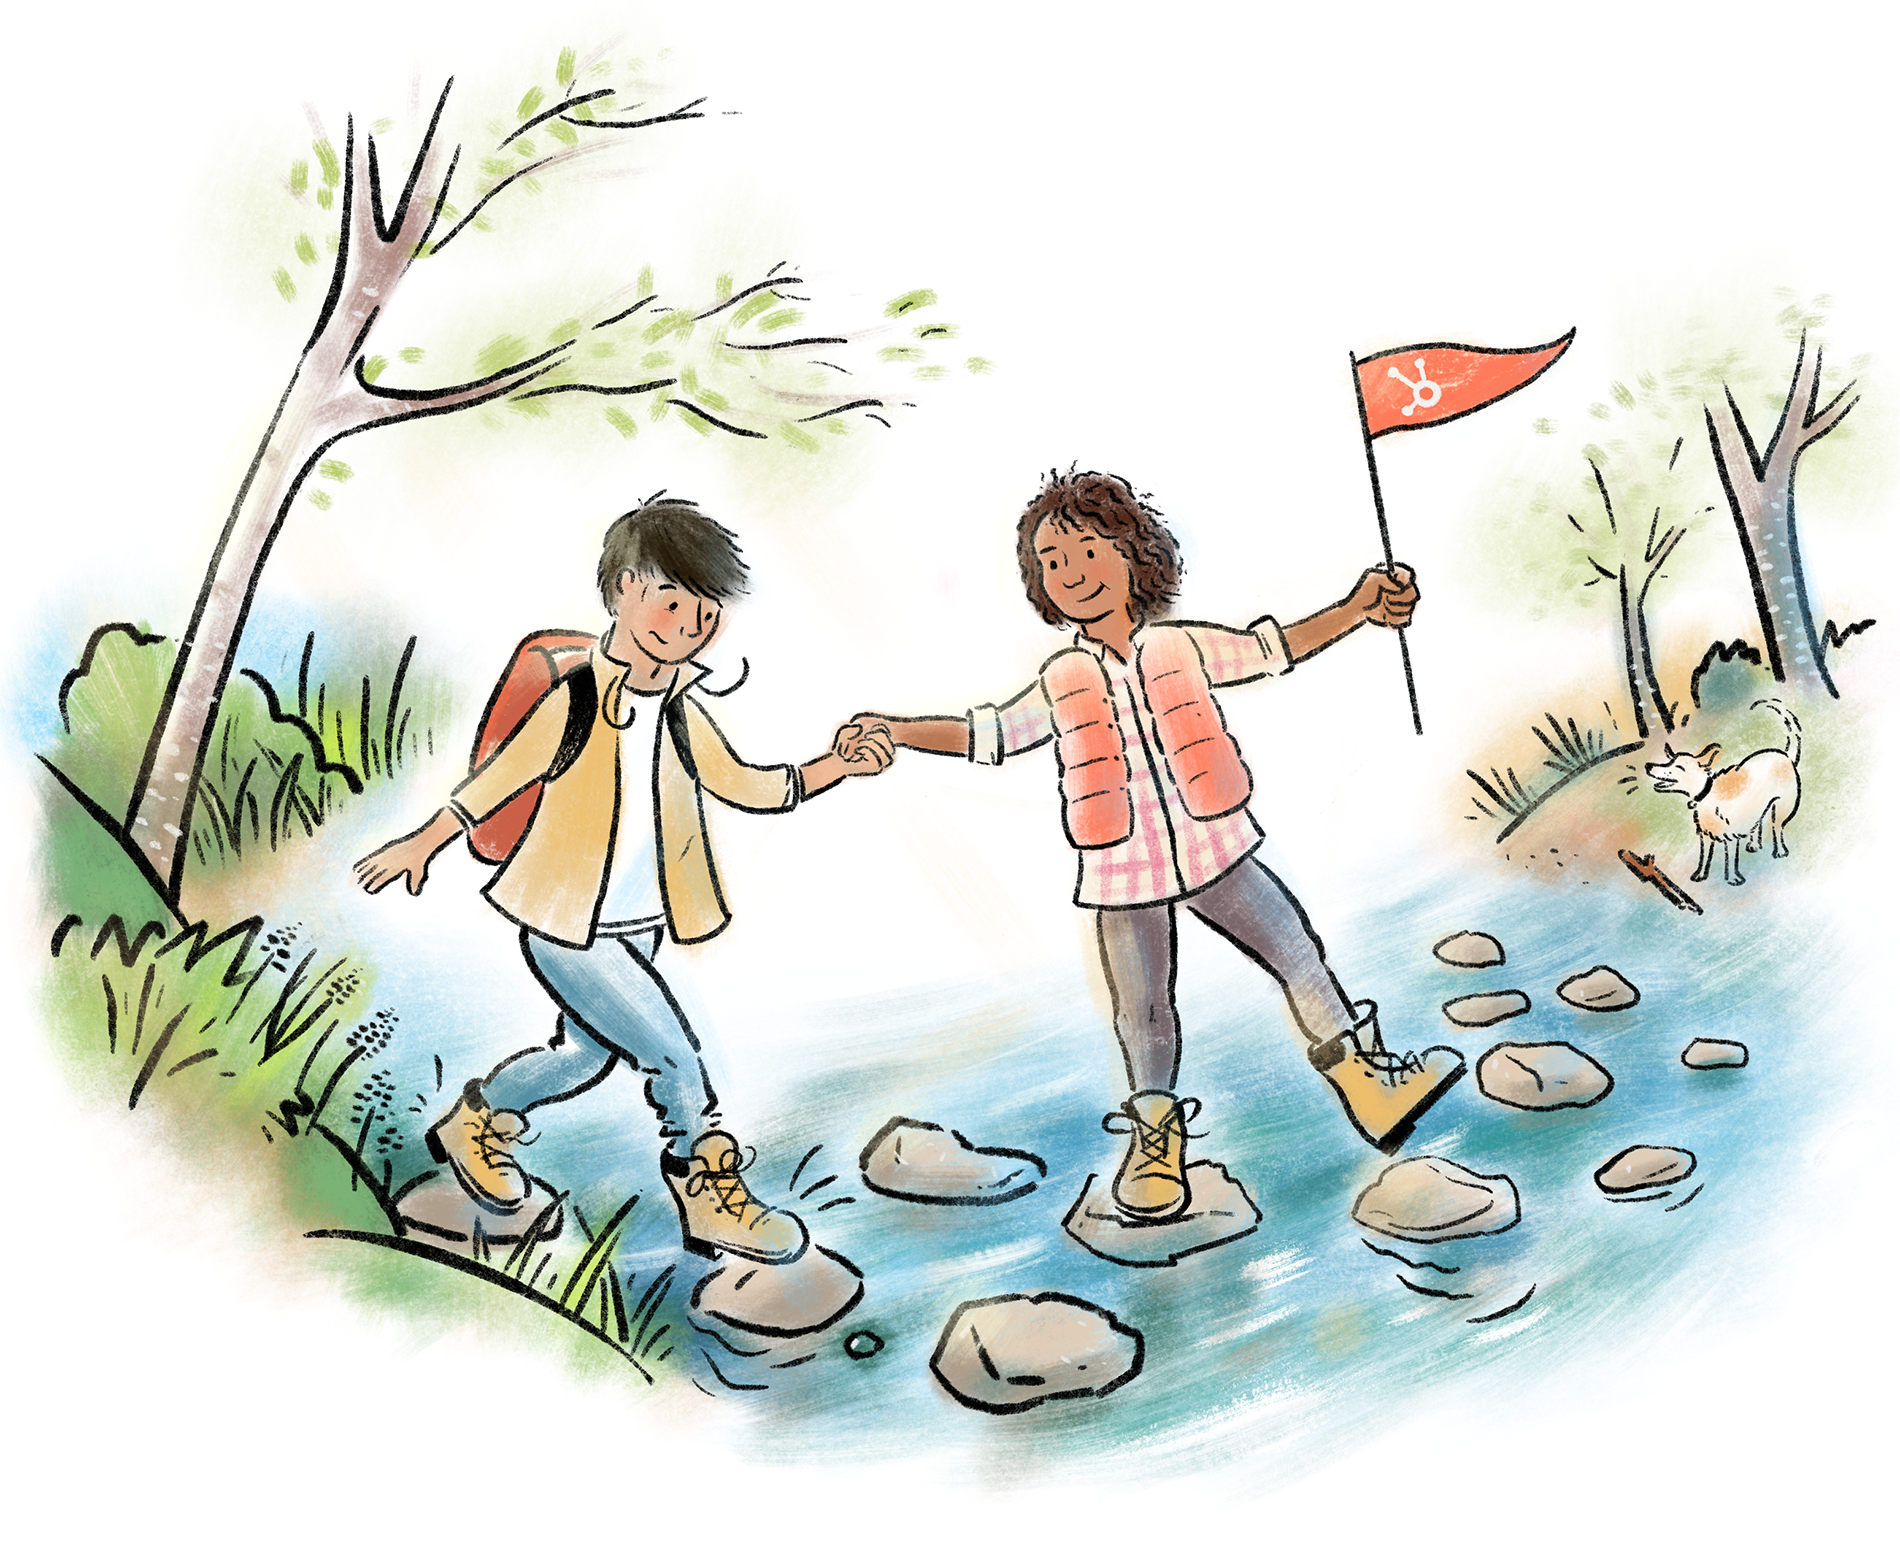 A smiling woman in hiking clothes helps a person step across stones in a river while a friendly dog barks on the shore.